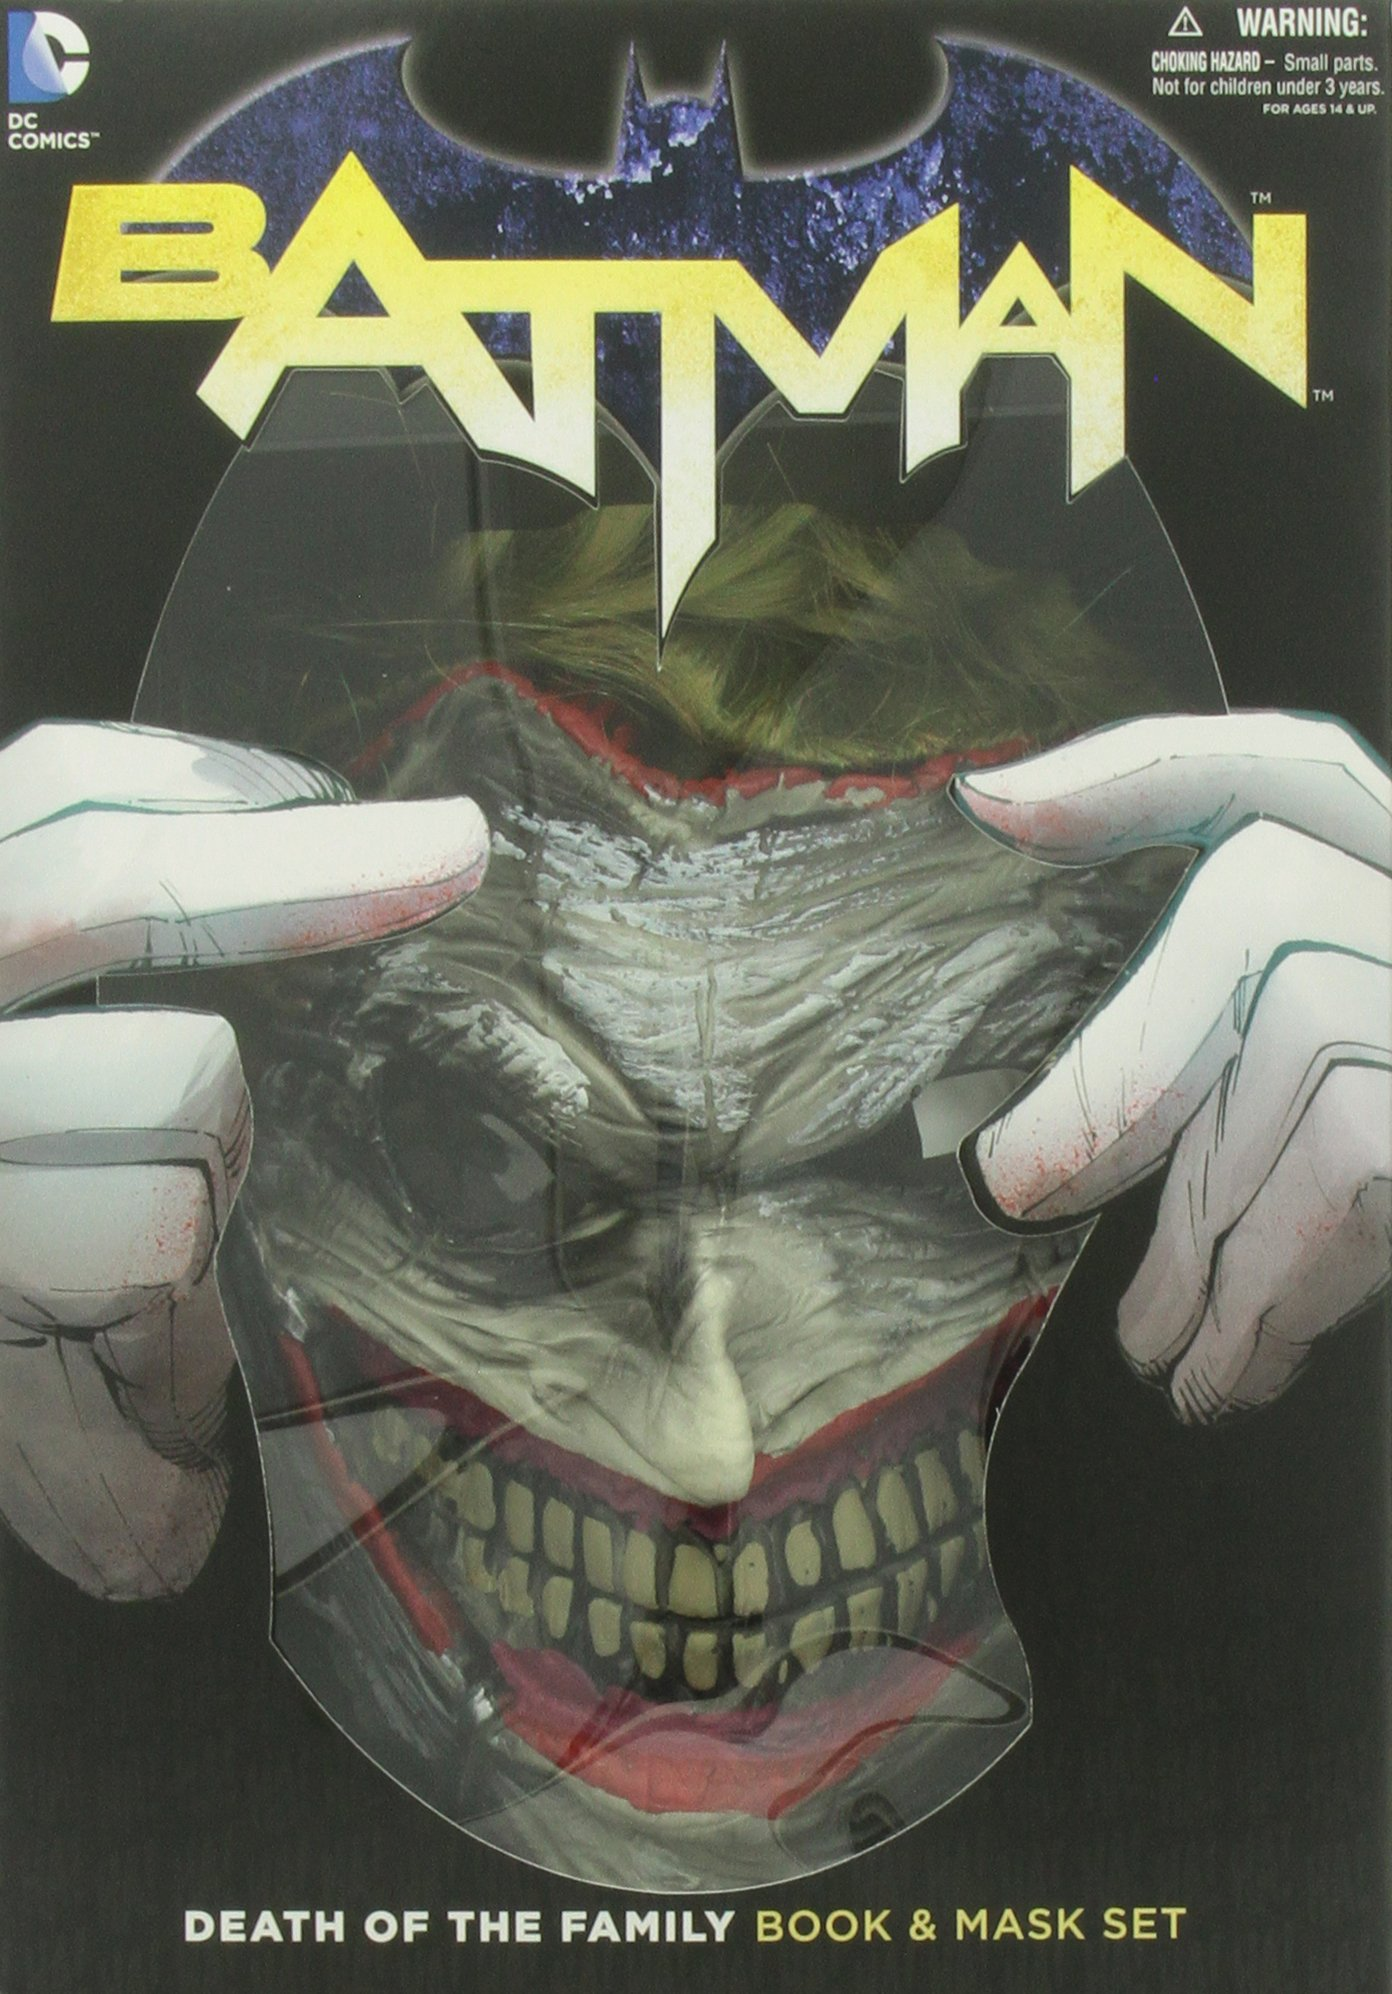 Batman: Death of the Family Mask and Book Set: Amazon.es: Scott Snyder, Greg Capullo: Libros en idiomas extranjeros